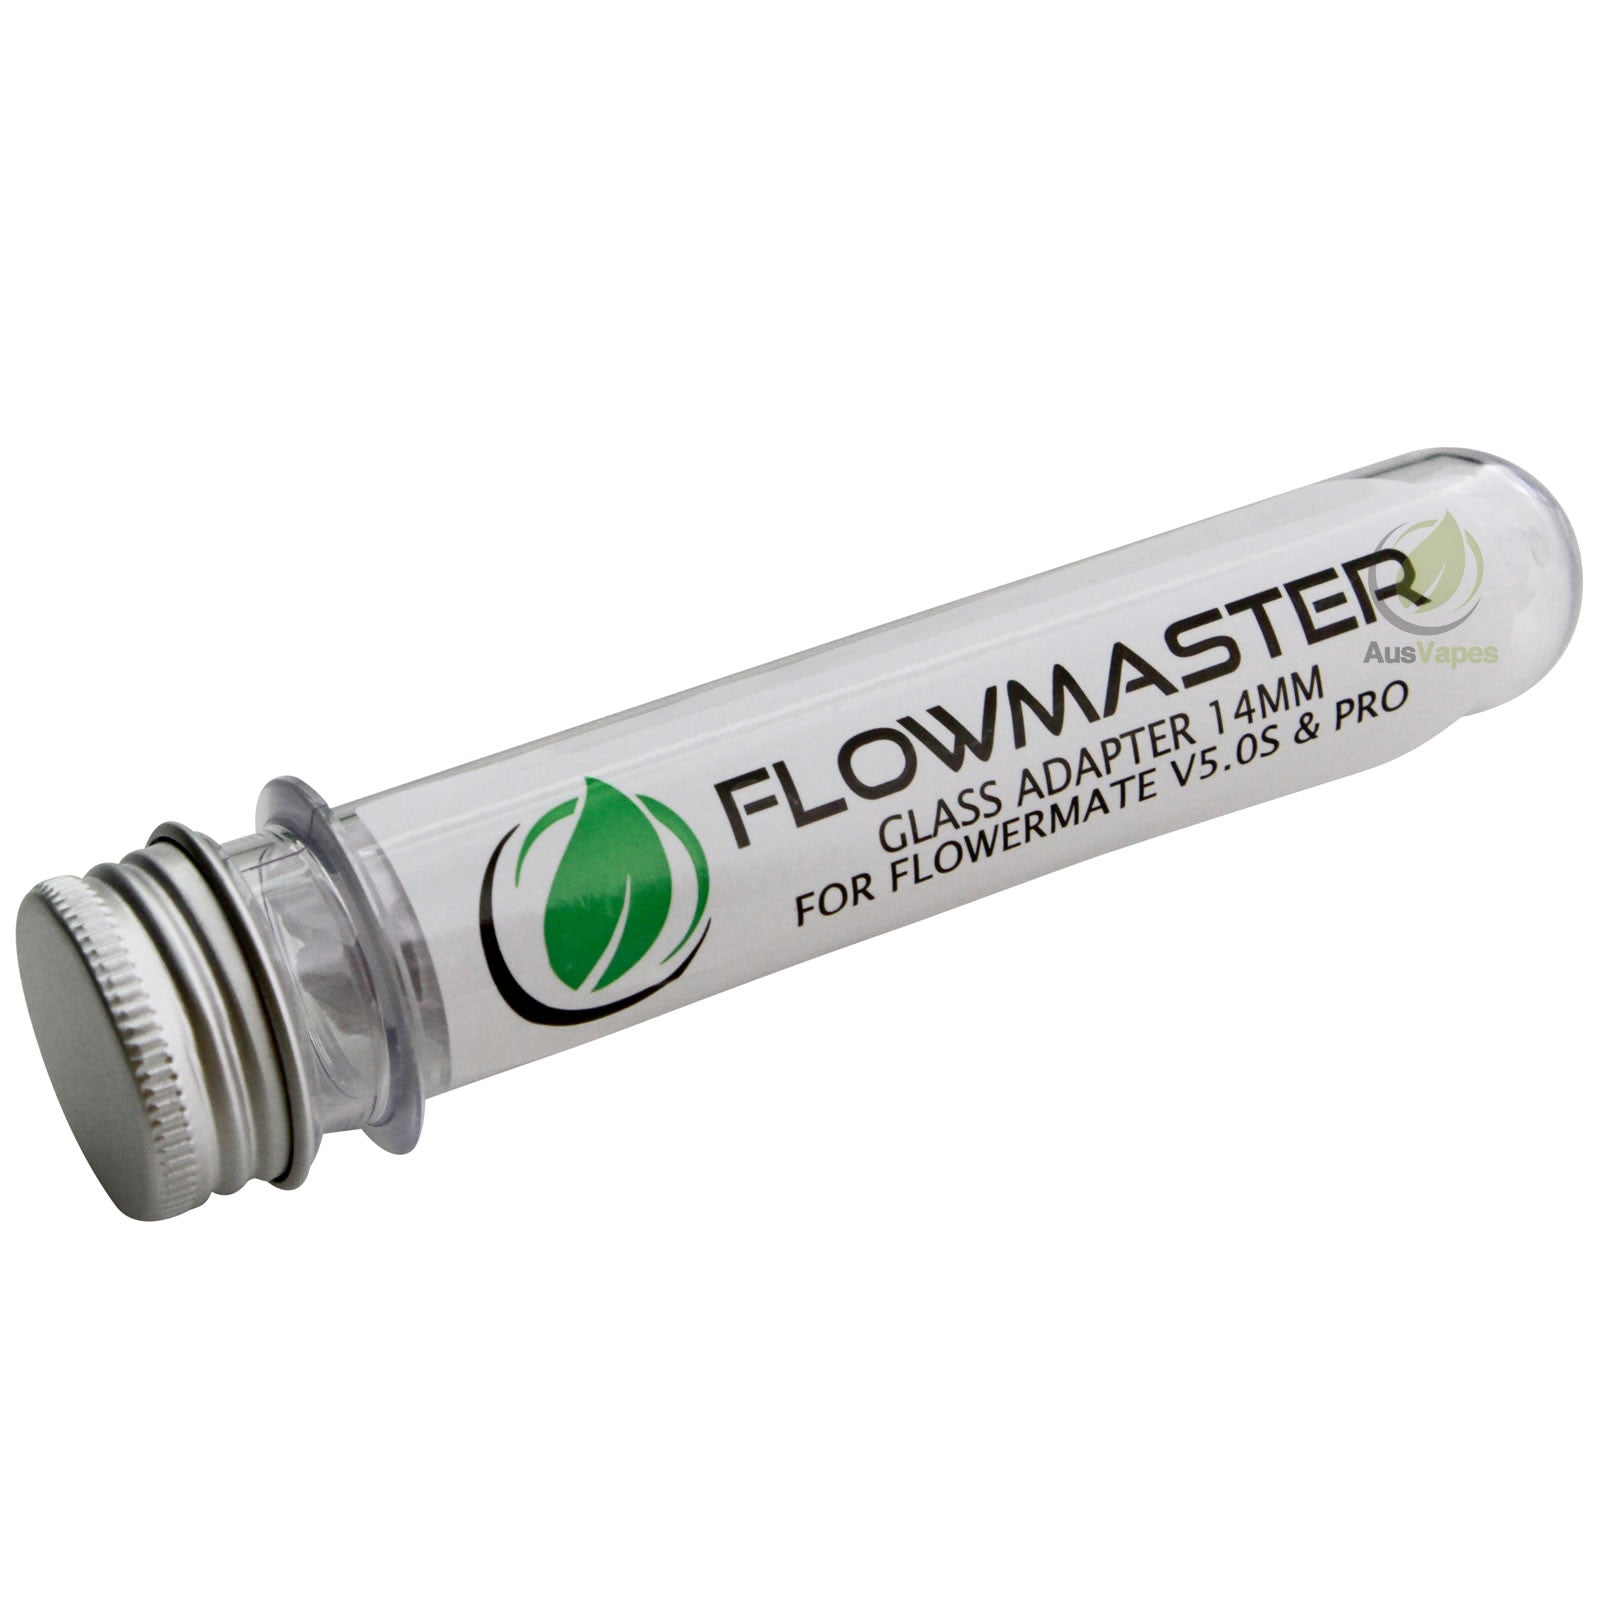 FlowMaster 14mm GonG Adapter for Flowermate V5.0